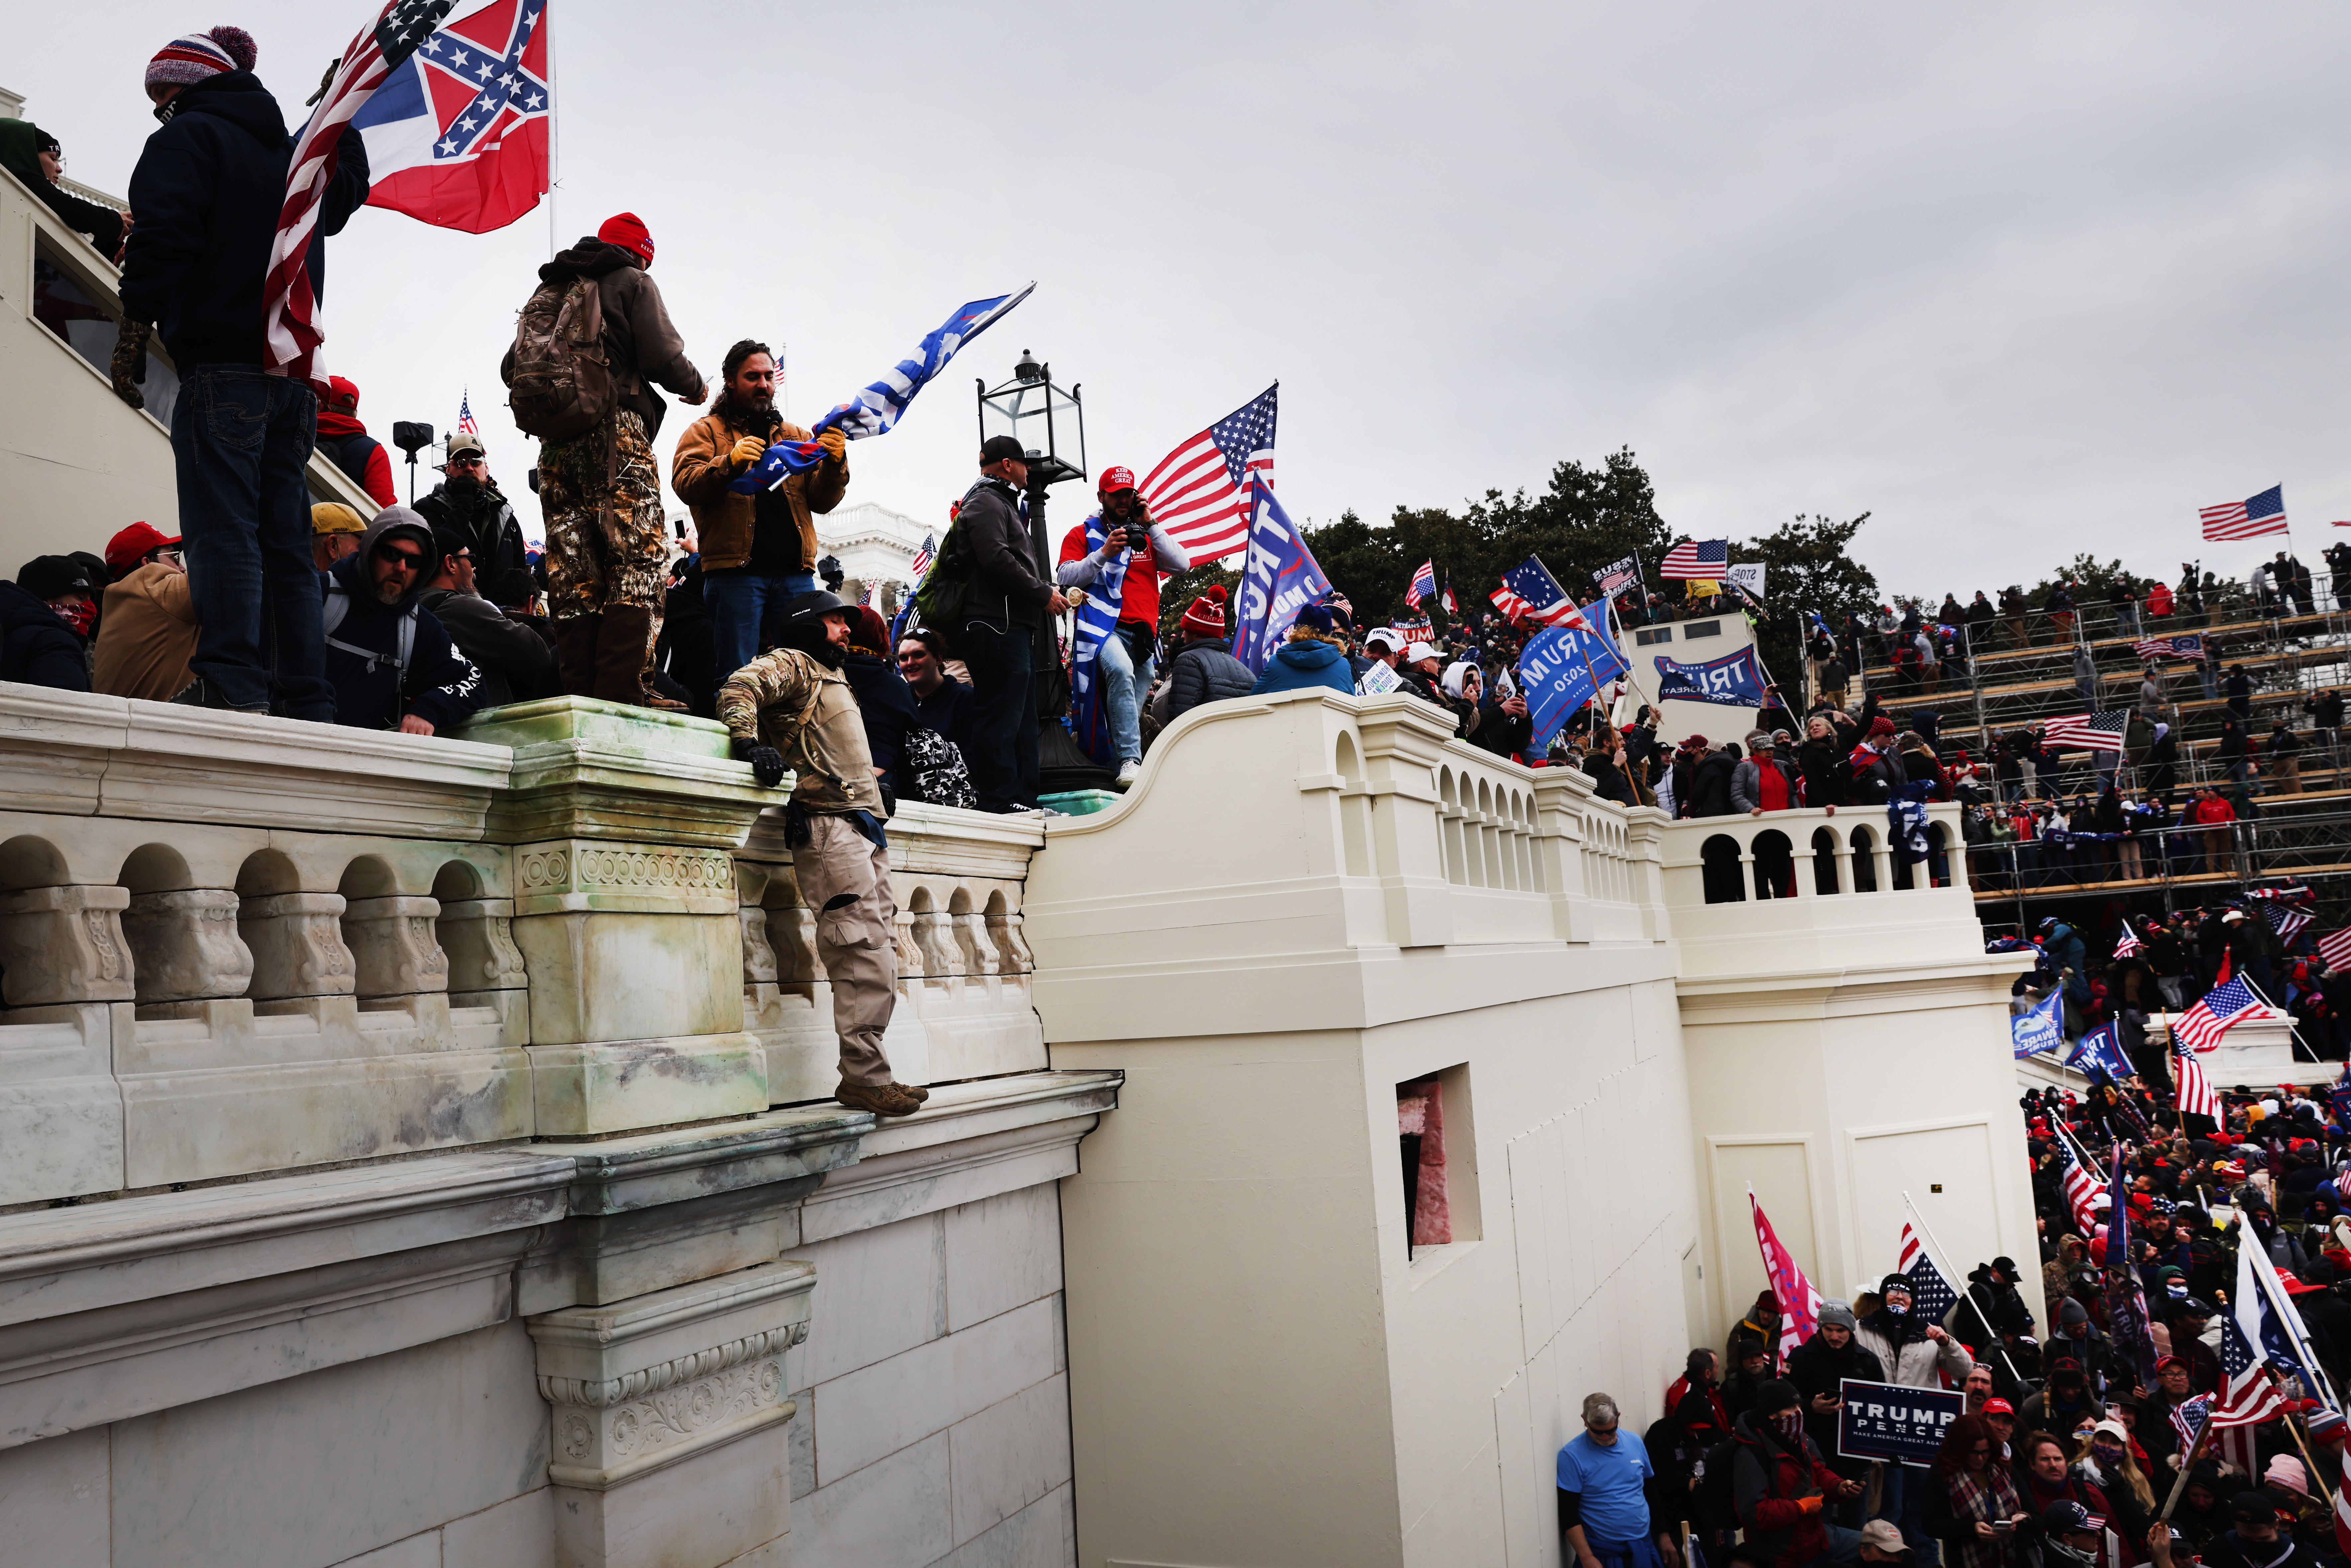 Thousands of Donald Trump supporters storm the U.S. Capitol building